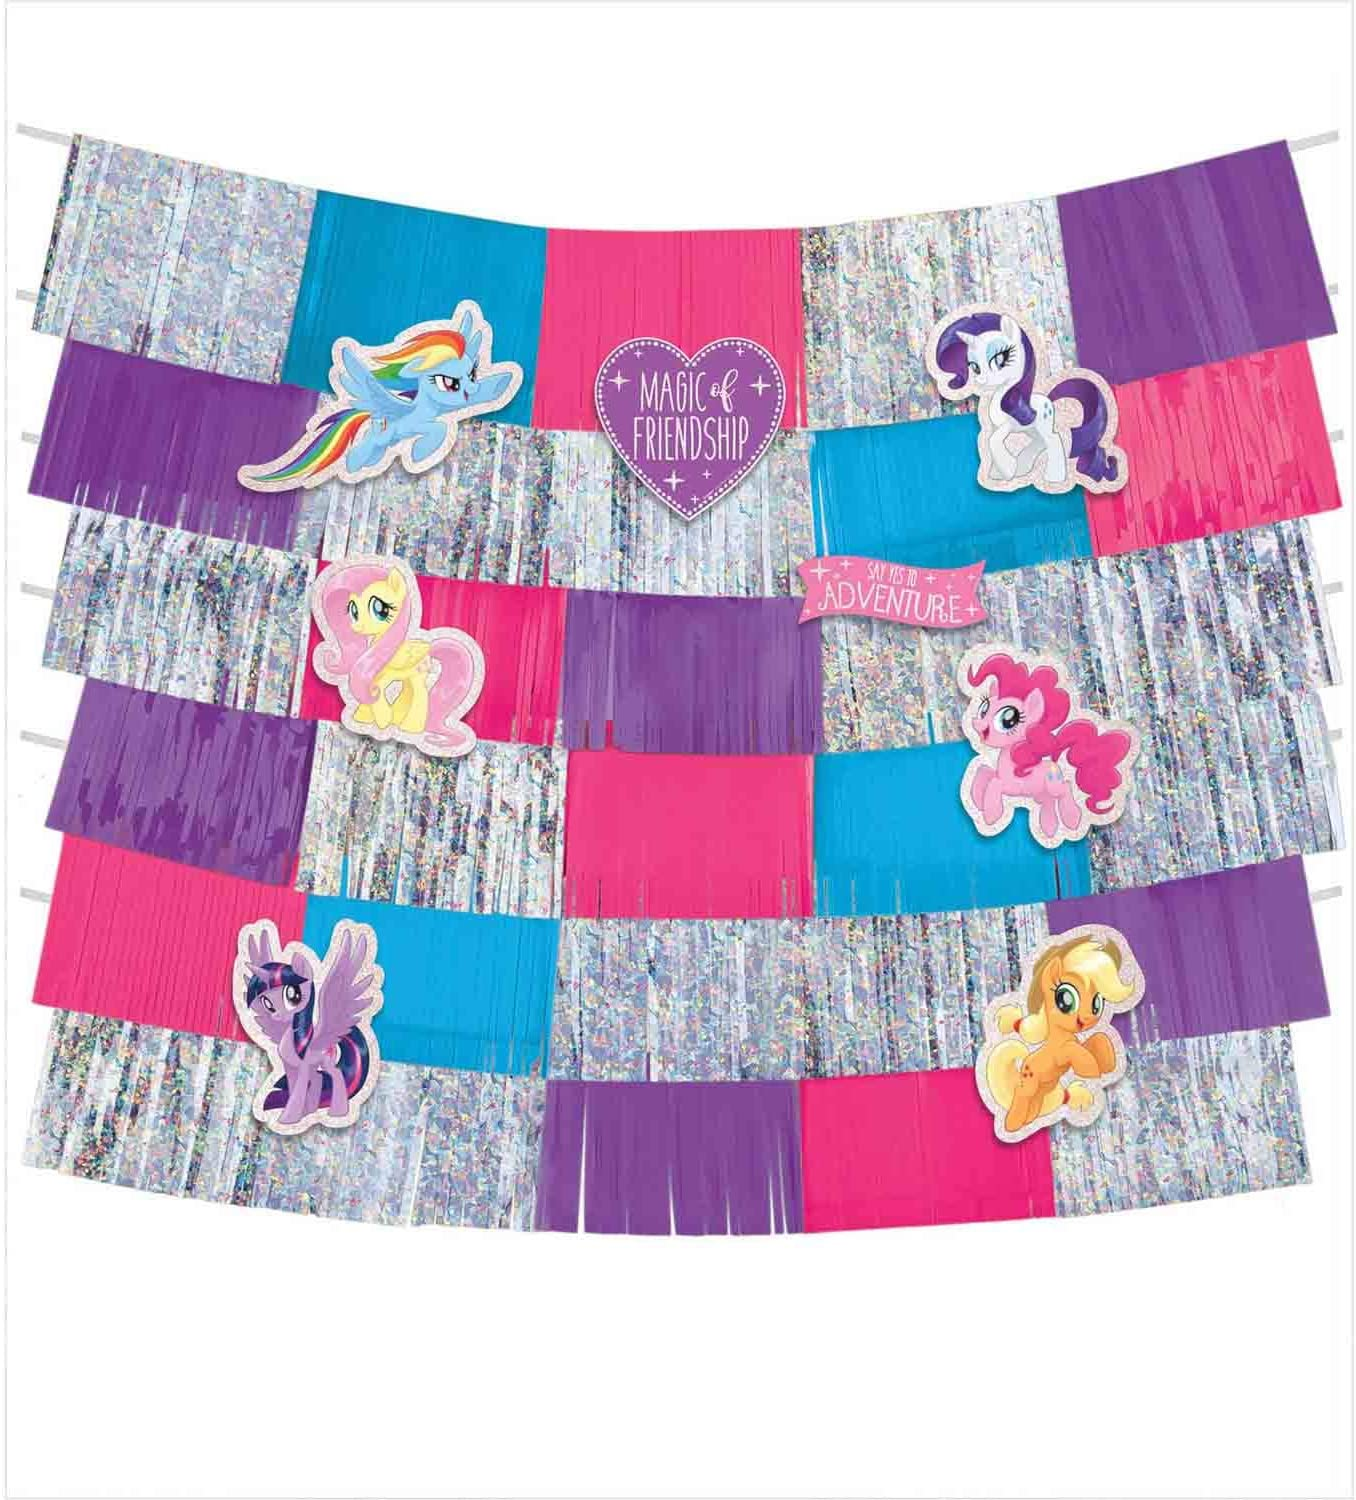 amscan My Little Pony Friendship Adventures Backdrop Kit - 9 pcs, Blue/Gray/Pink/Multicolor (242391), One Size